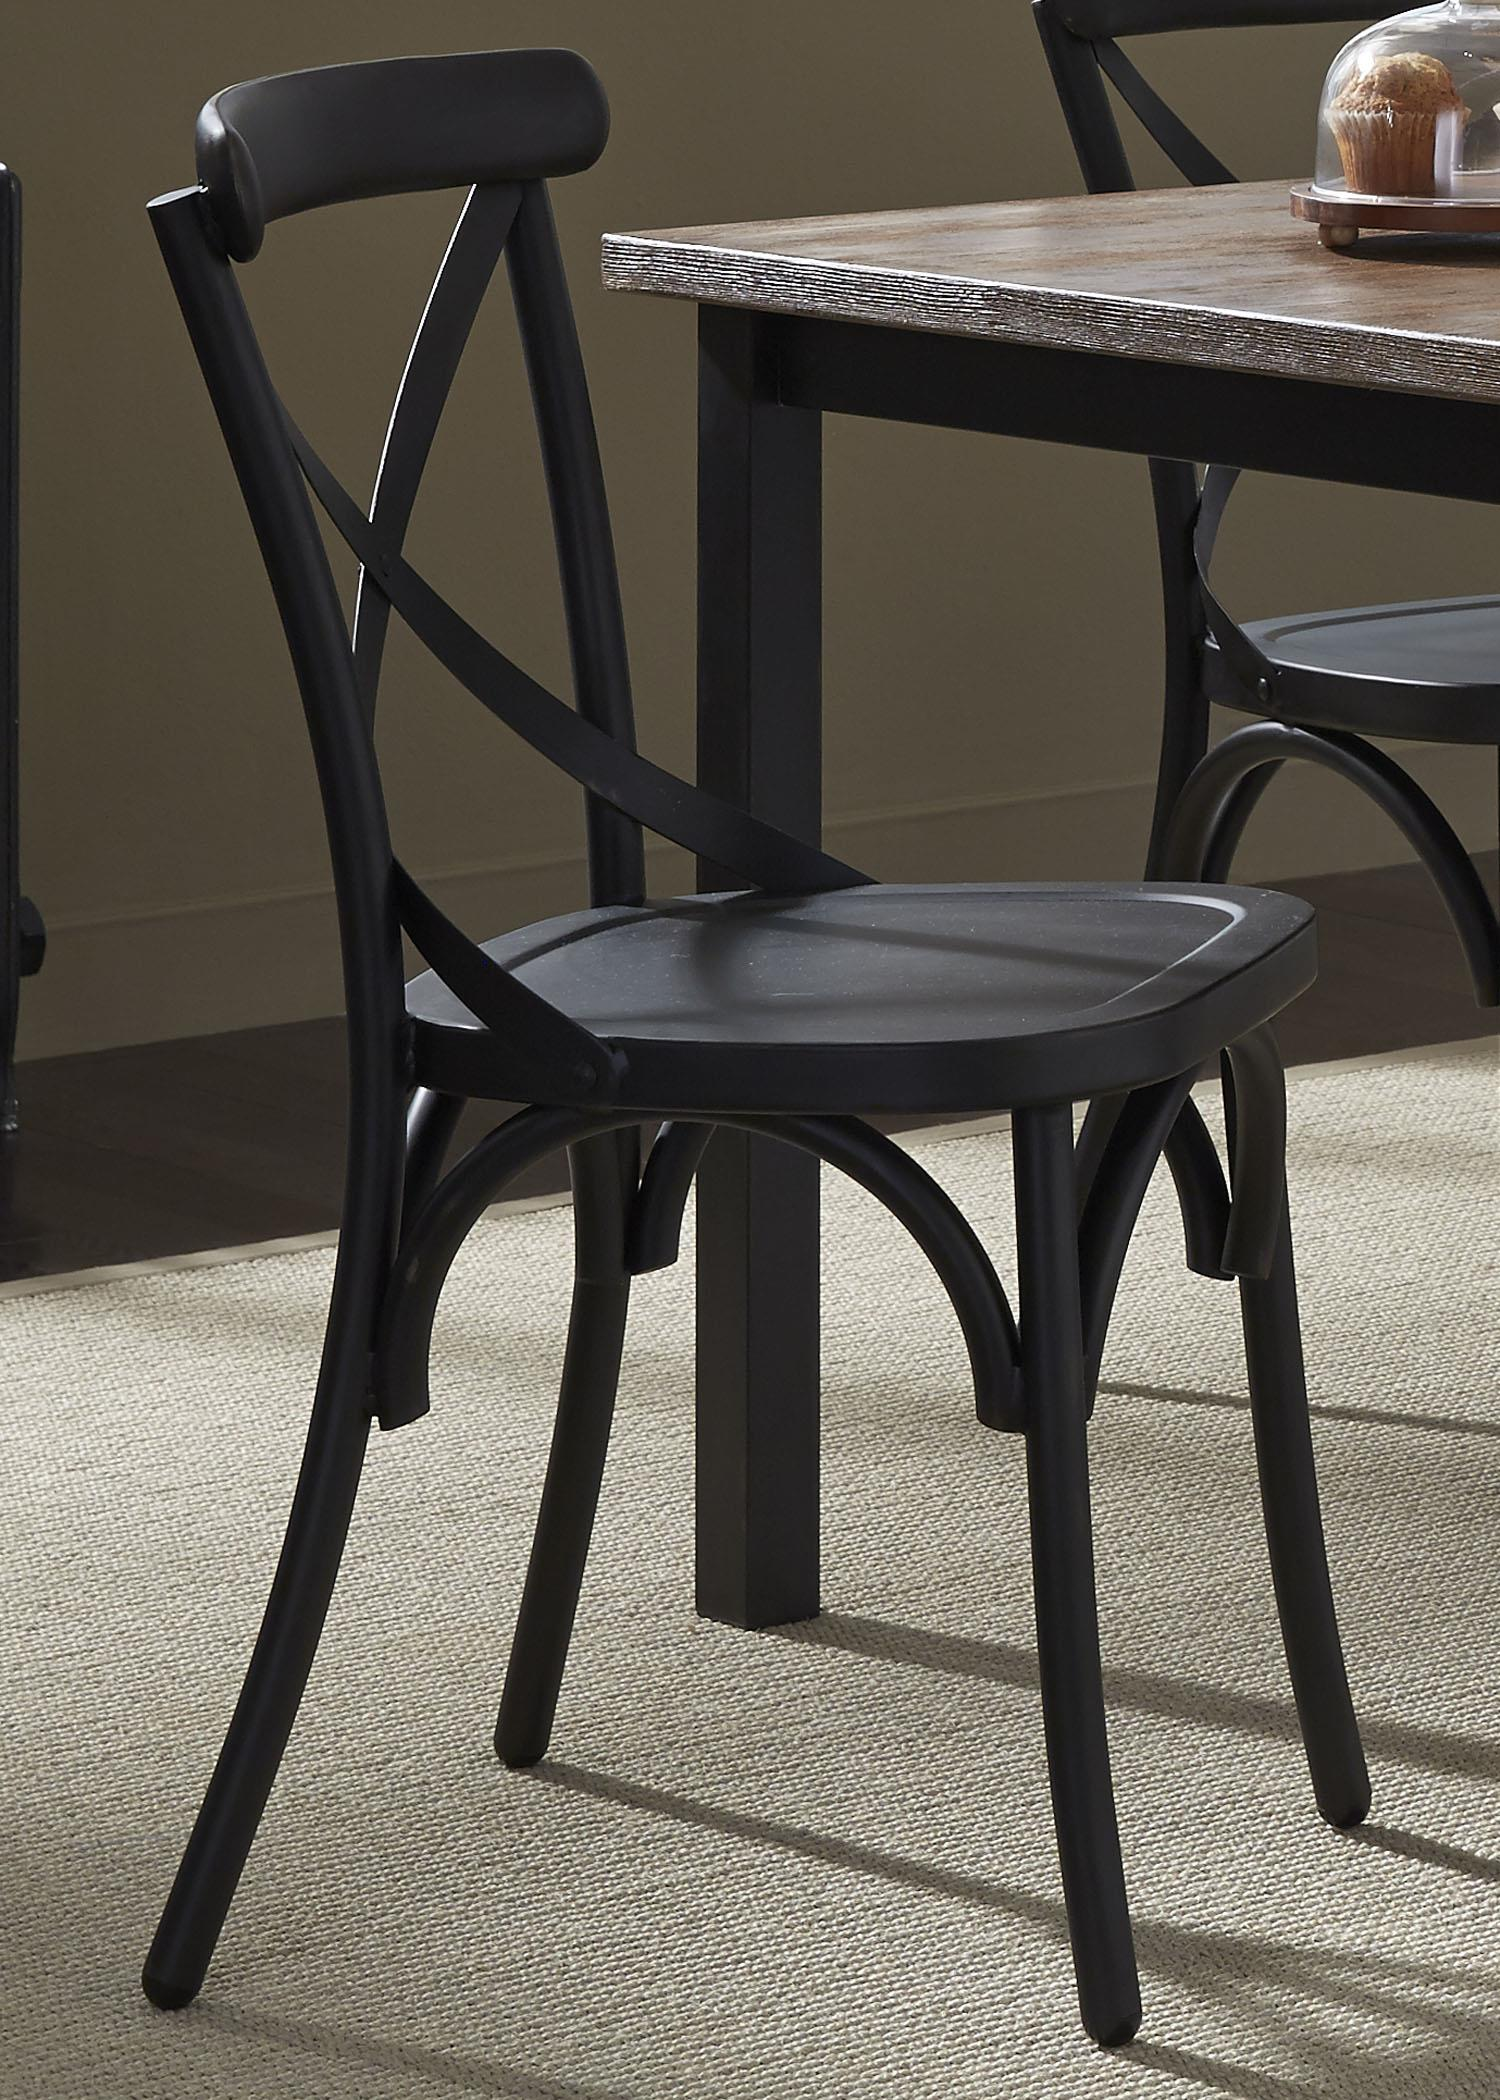 liberty dining chairs chair lower back support furniture vintage series 179 c3005 b x